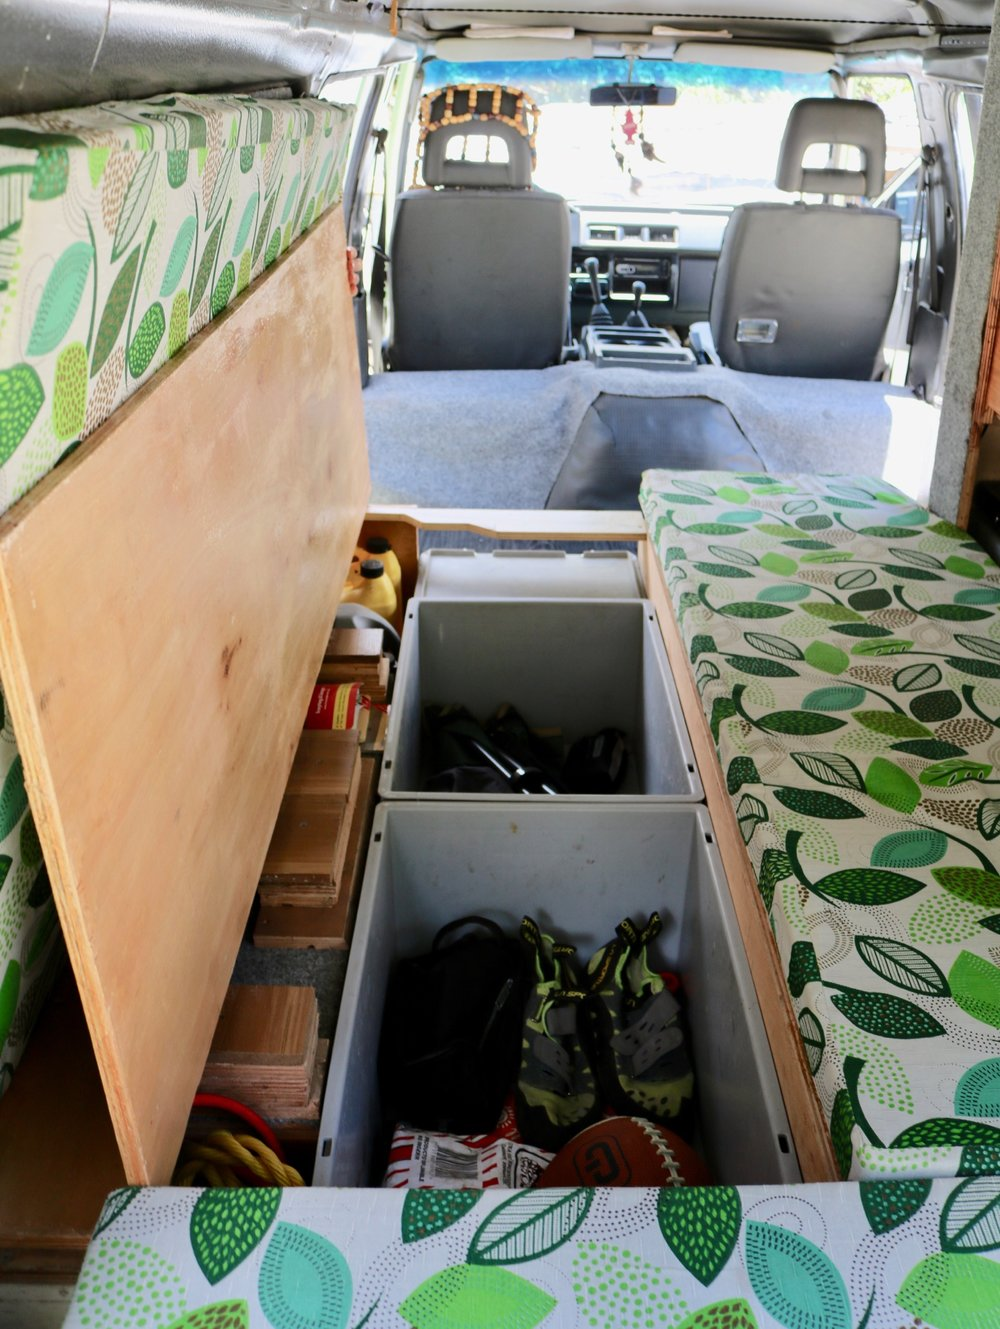 mitsubishi delica campervan conversion sofa storage